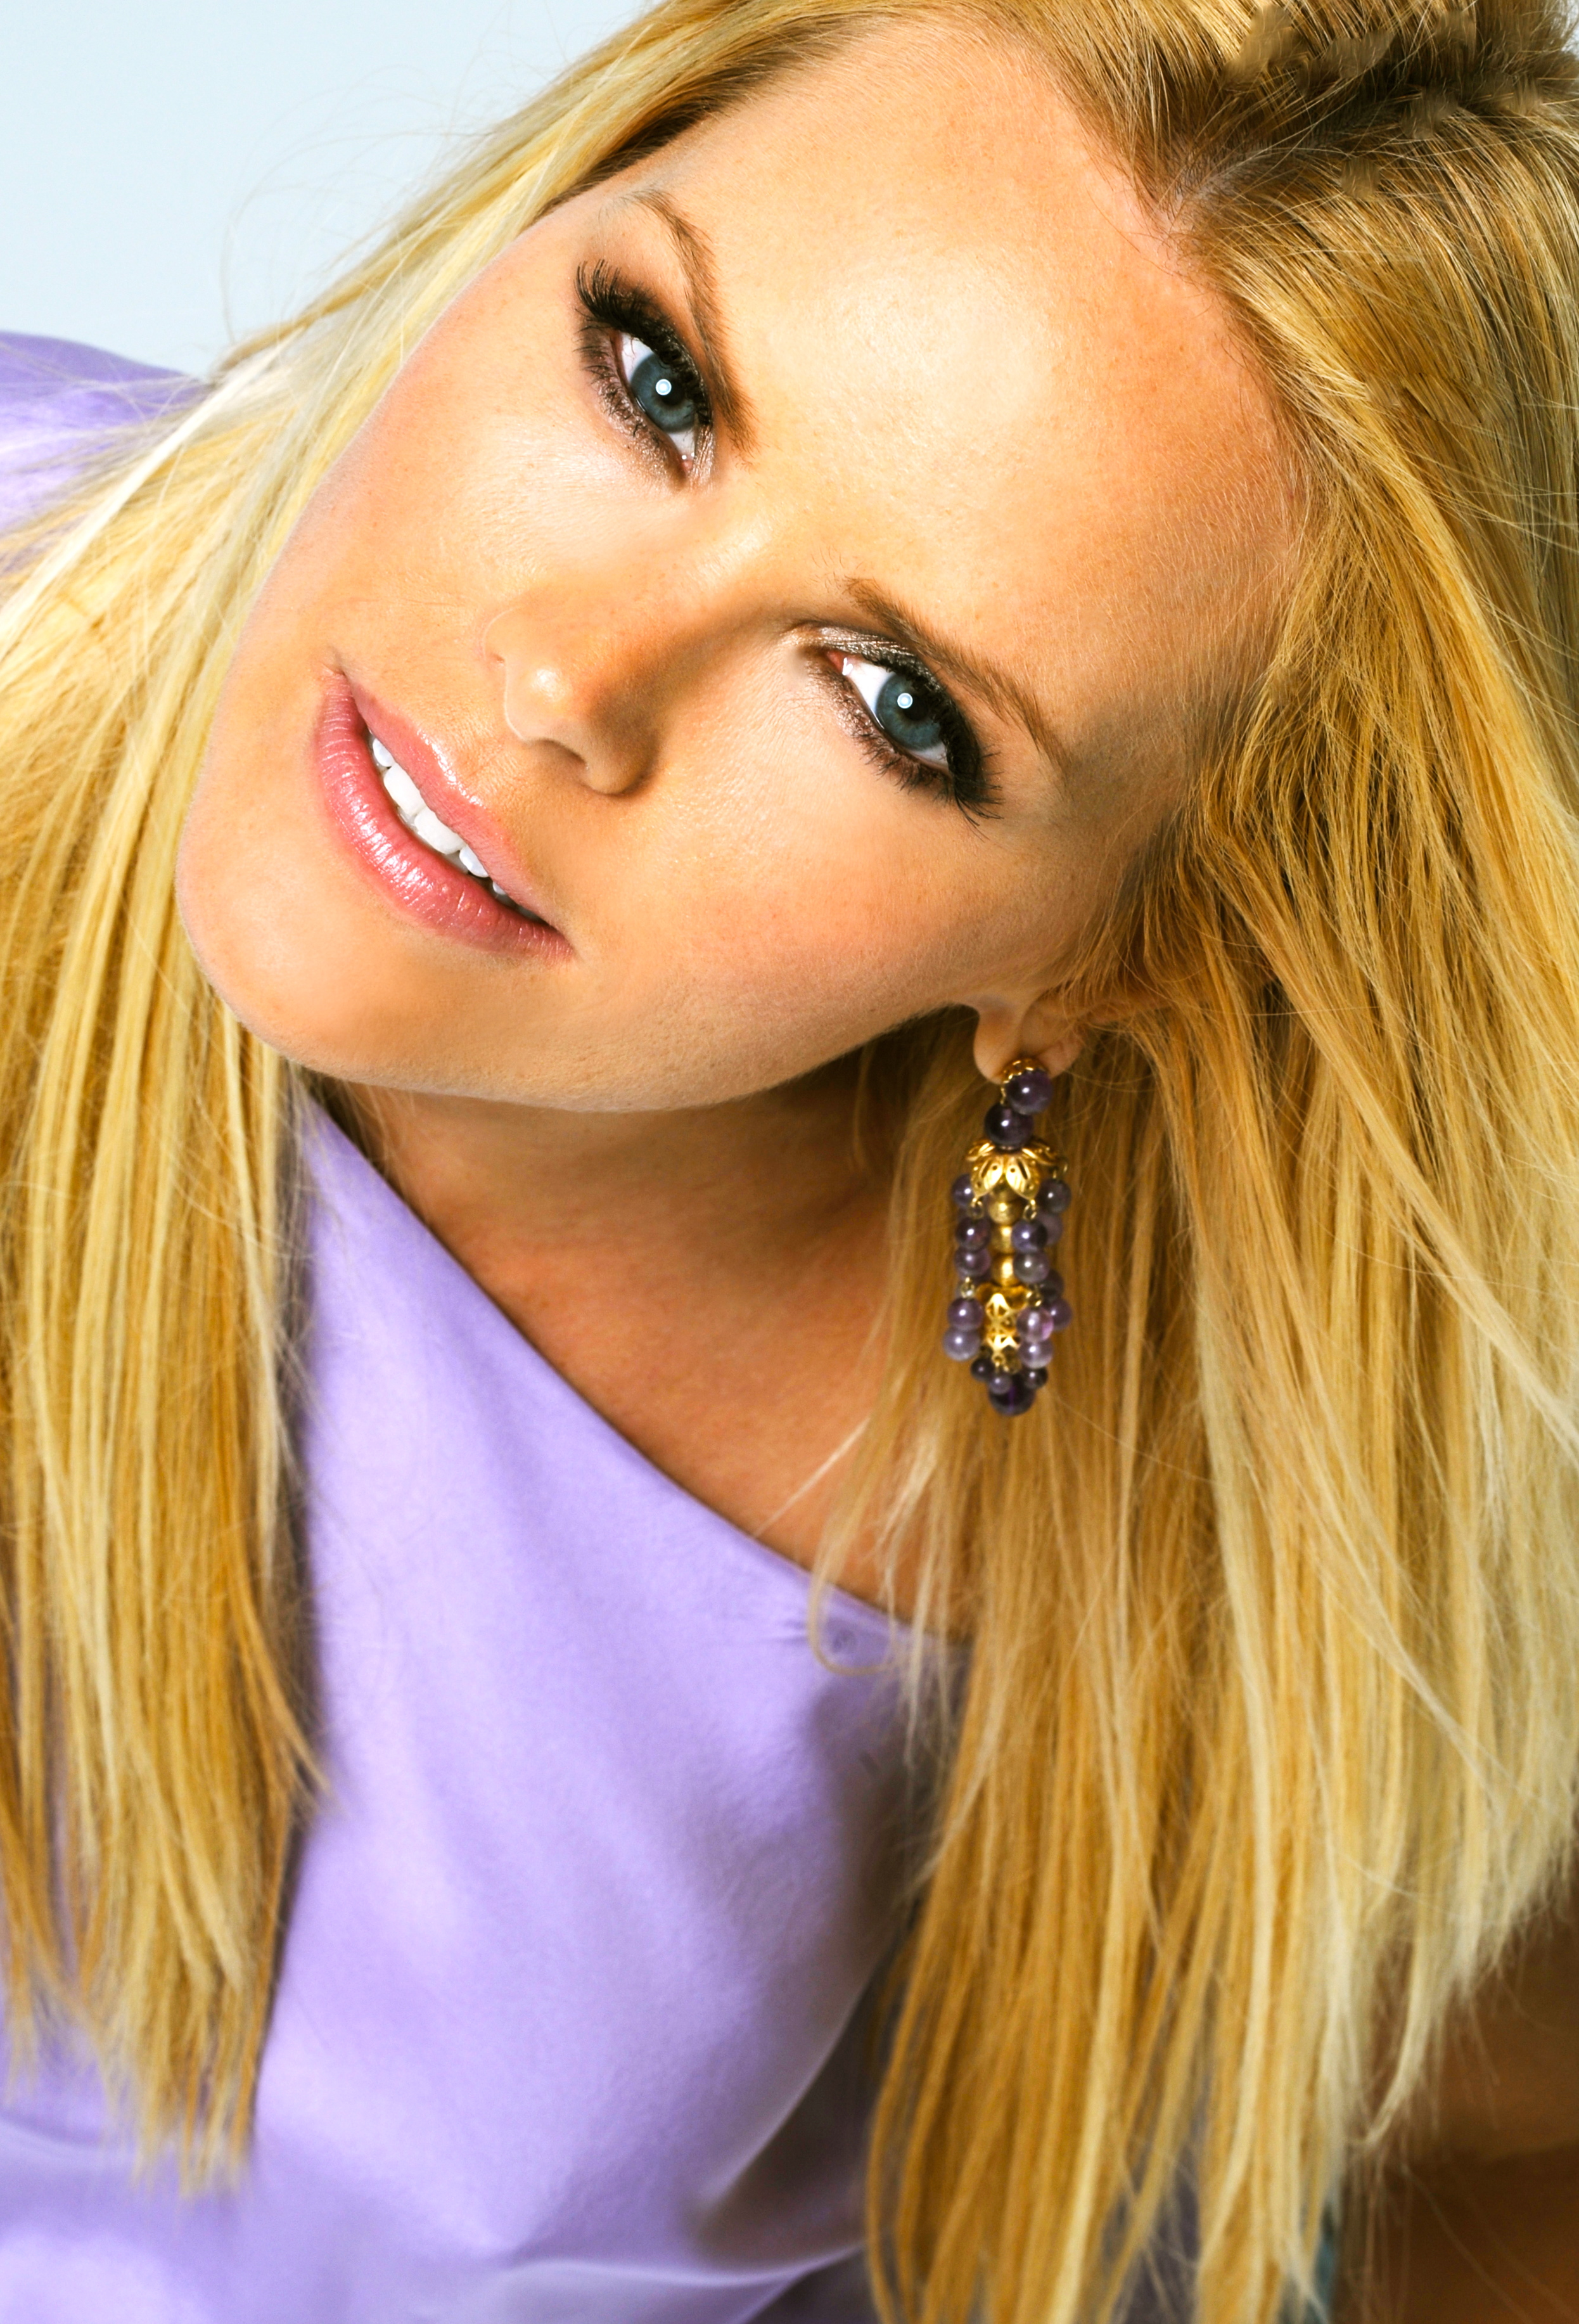 Hollywood Beautiful Girl Hd Wallpaper Beautiful Inside And Out Book By Gena Lee Nolin Mary